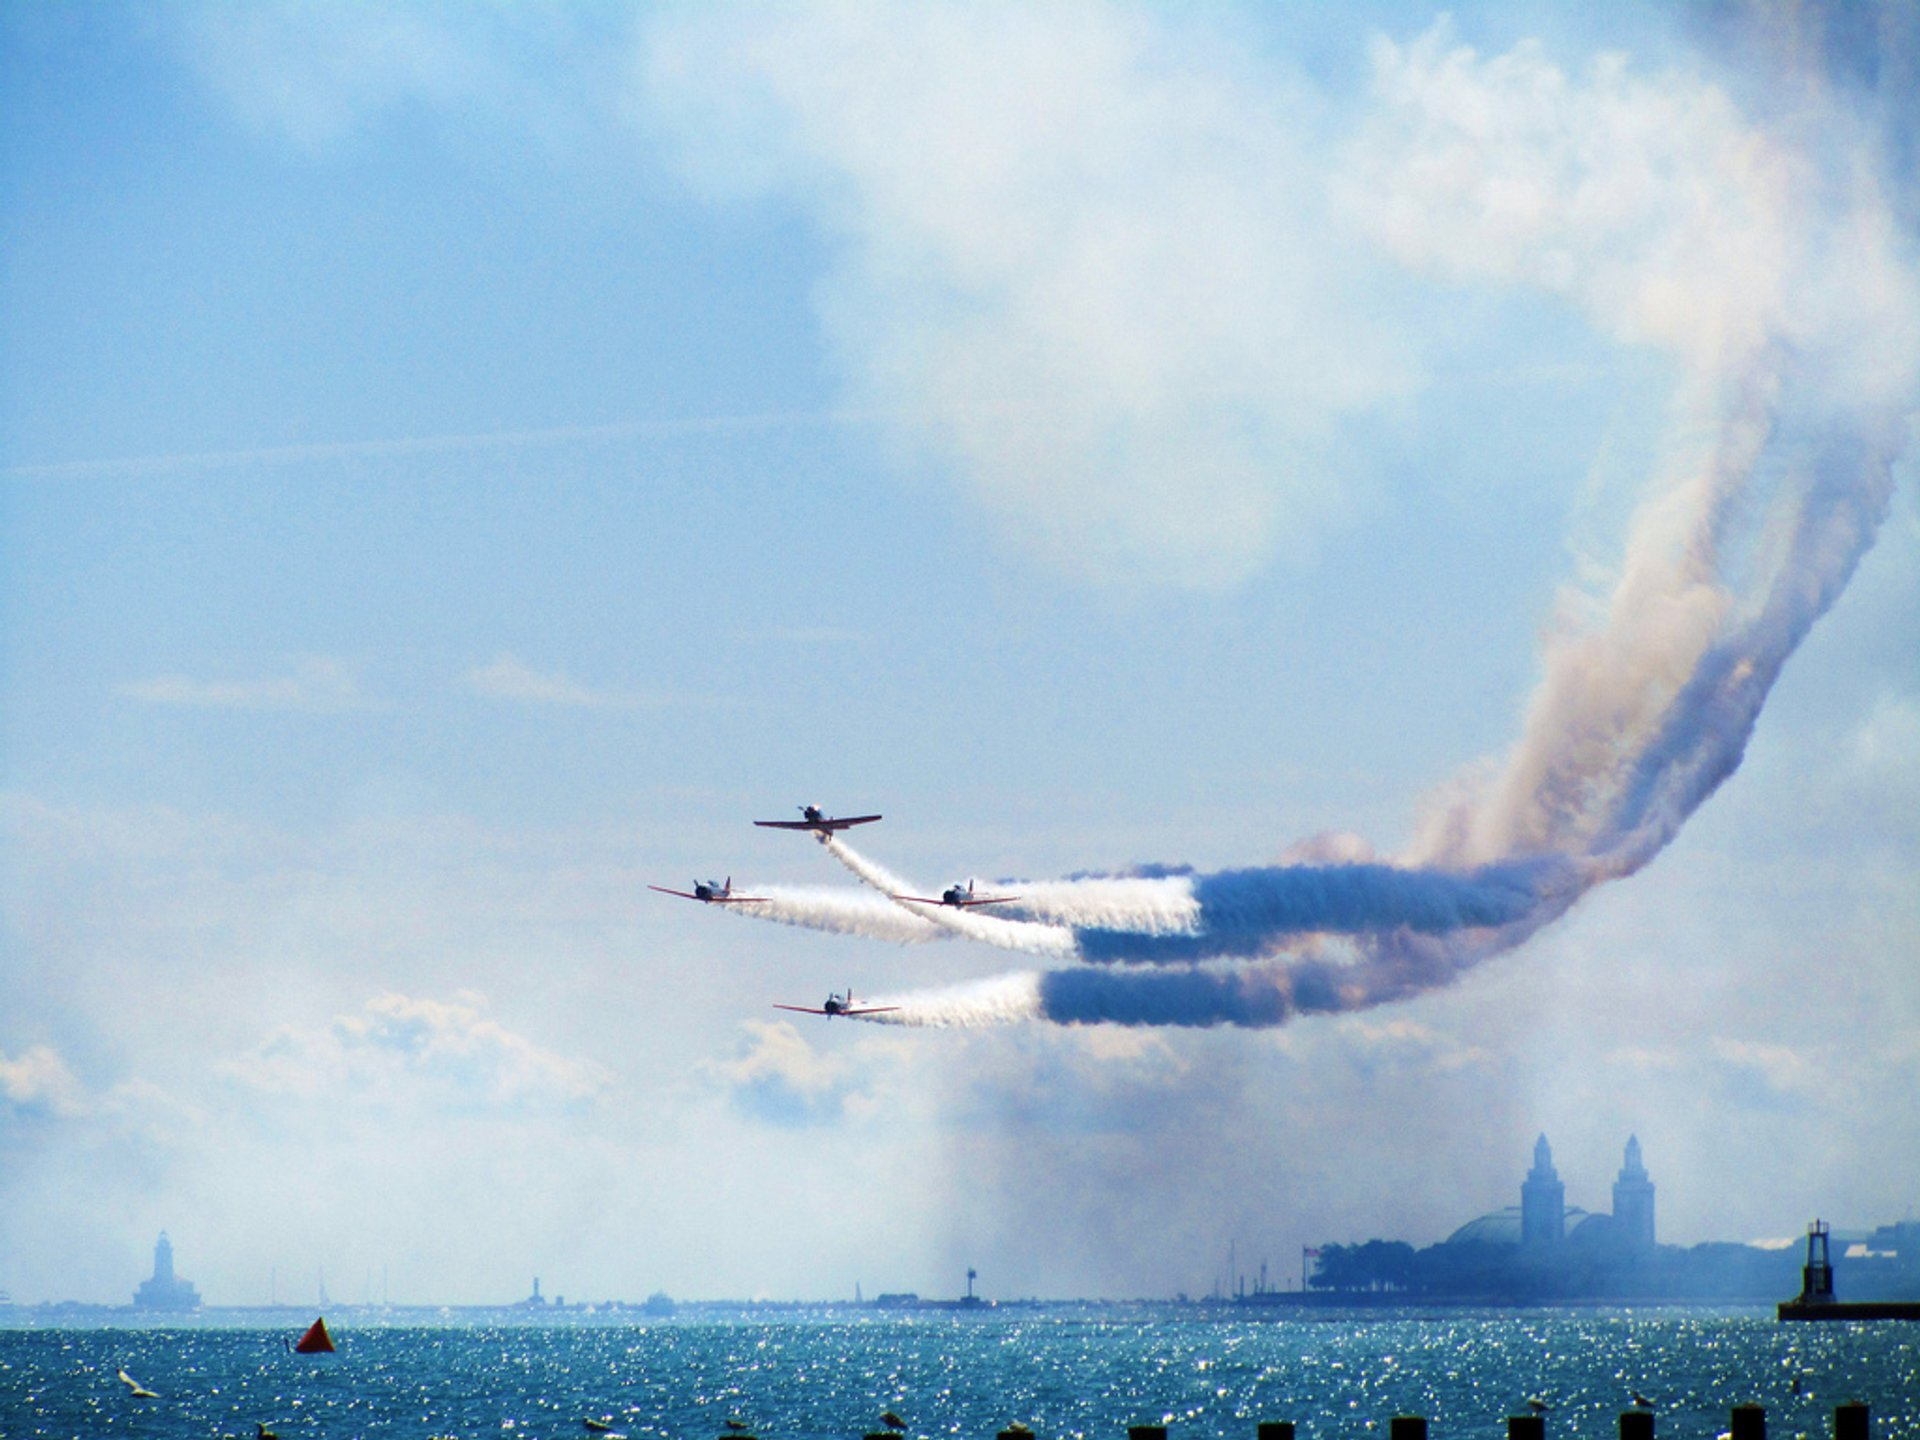 Chicago Air and Water Show in Chicago 2020 - Best Time